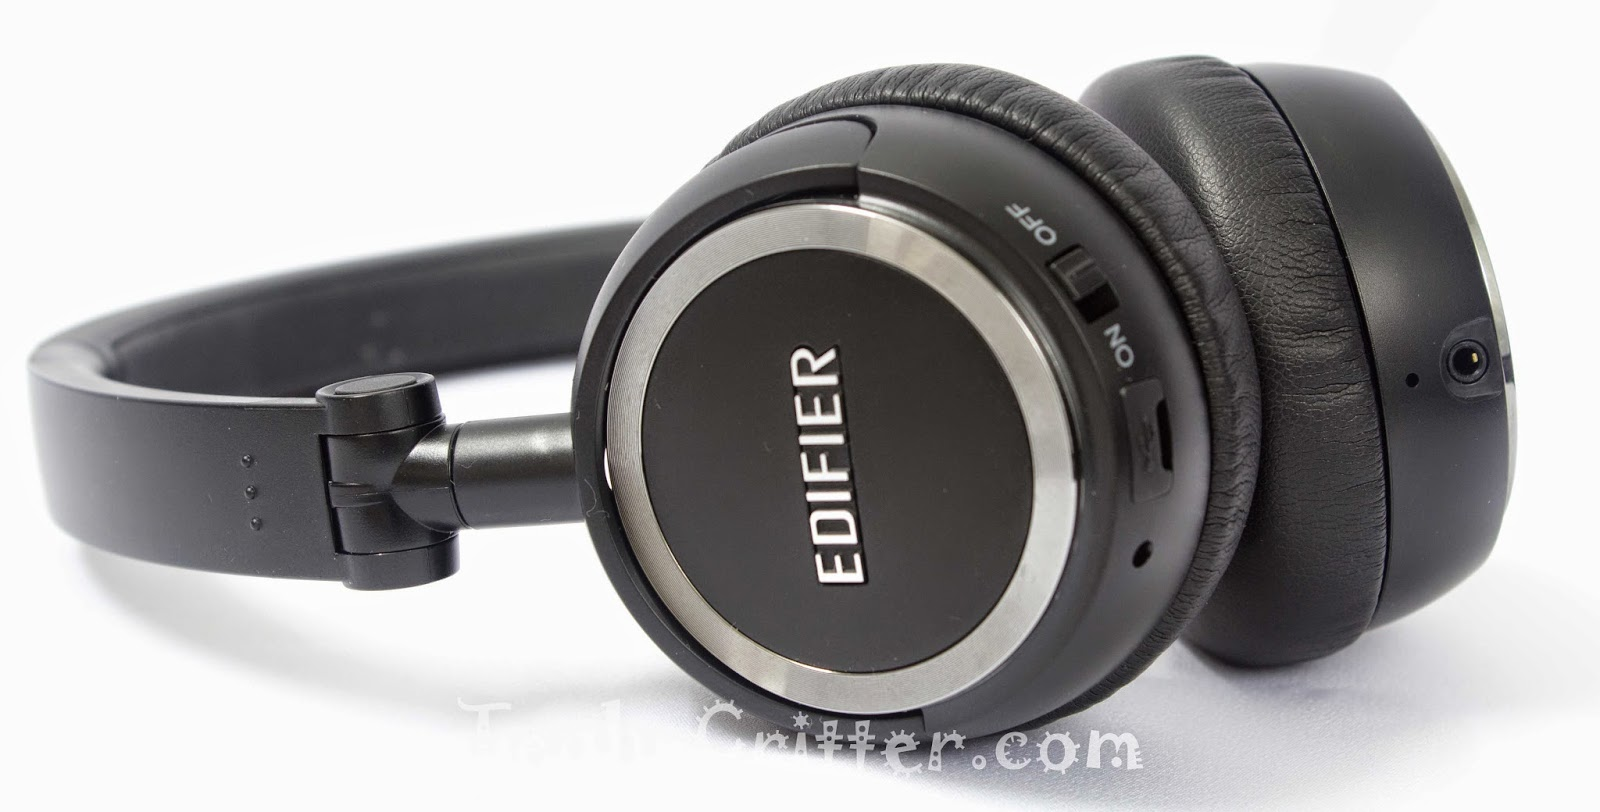 Unboxing & Review: Edifier W670BT Stereo Bluetooth Headset 48